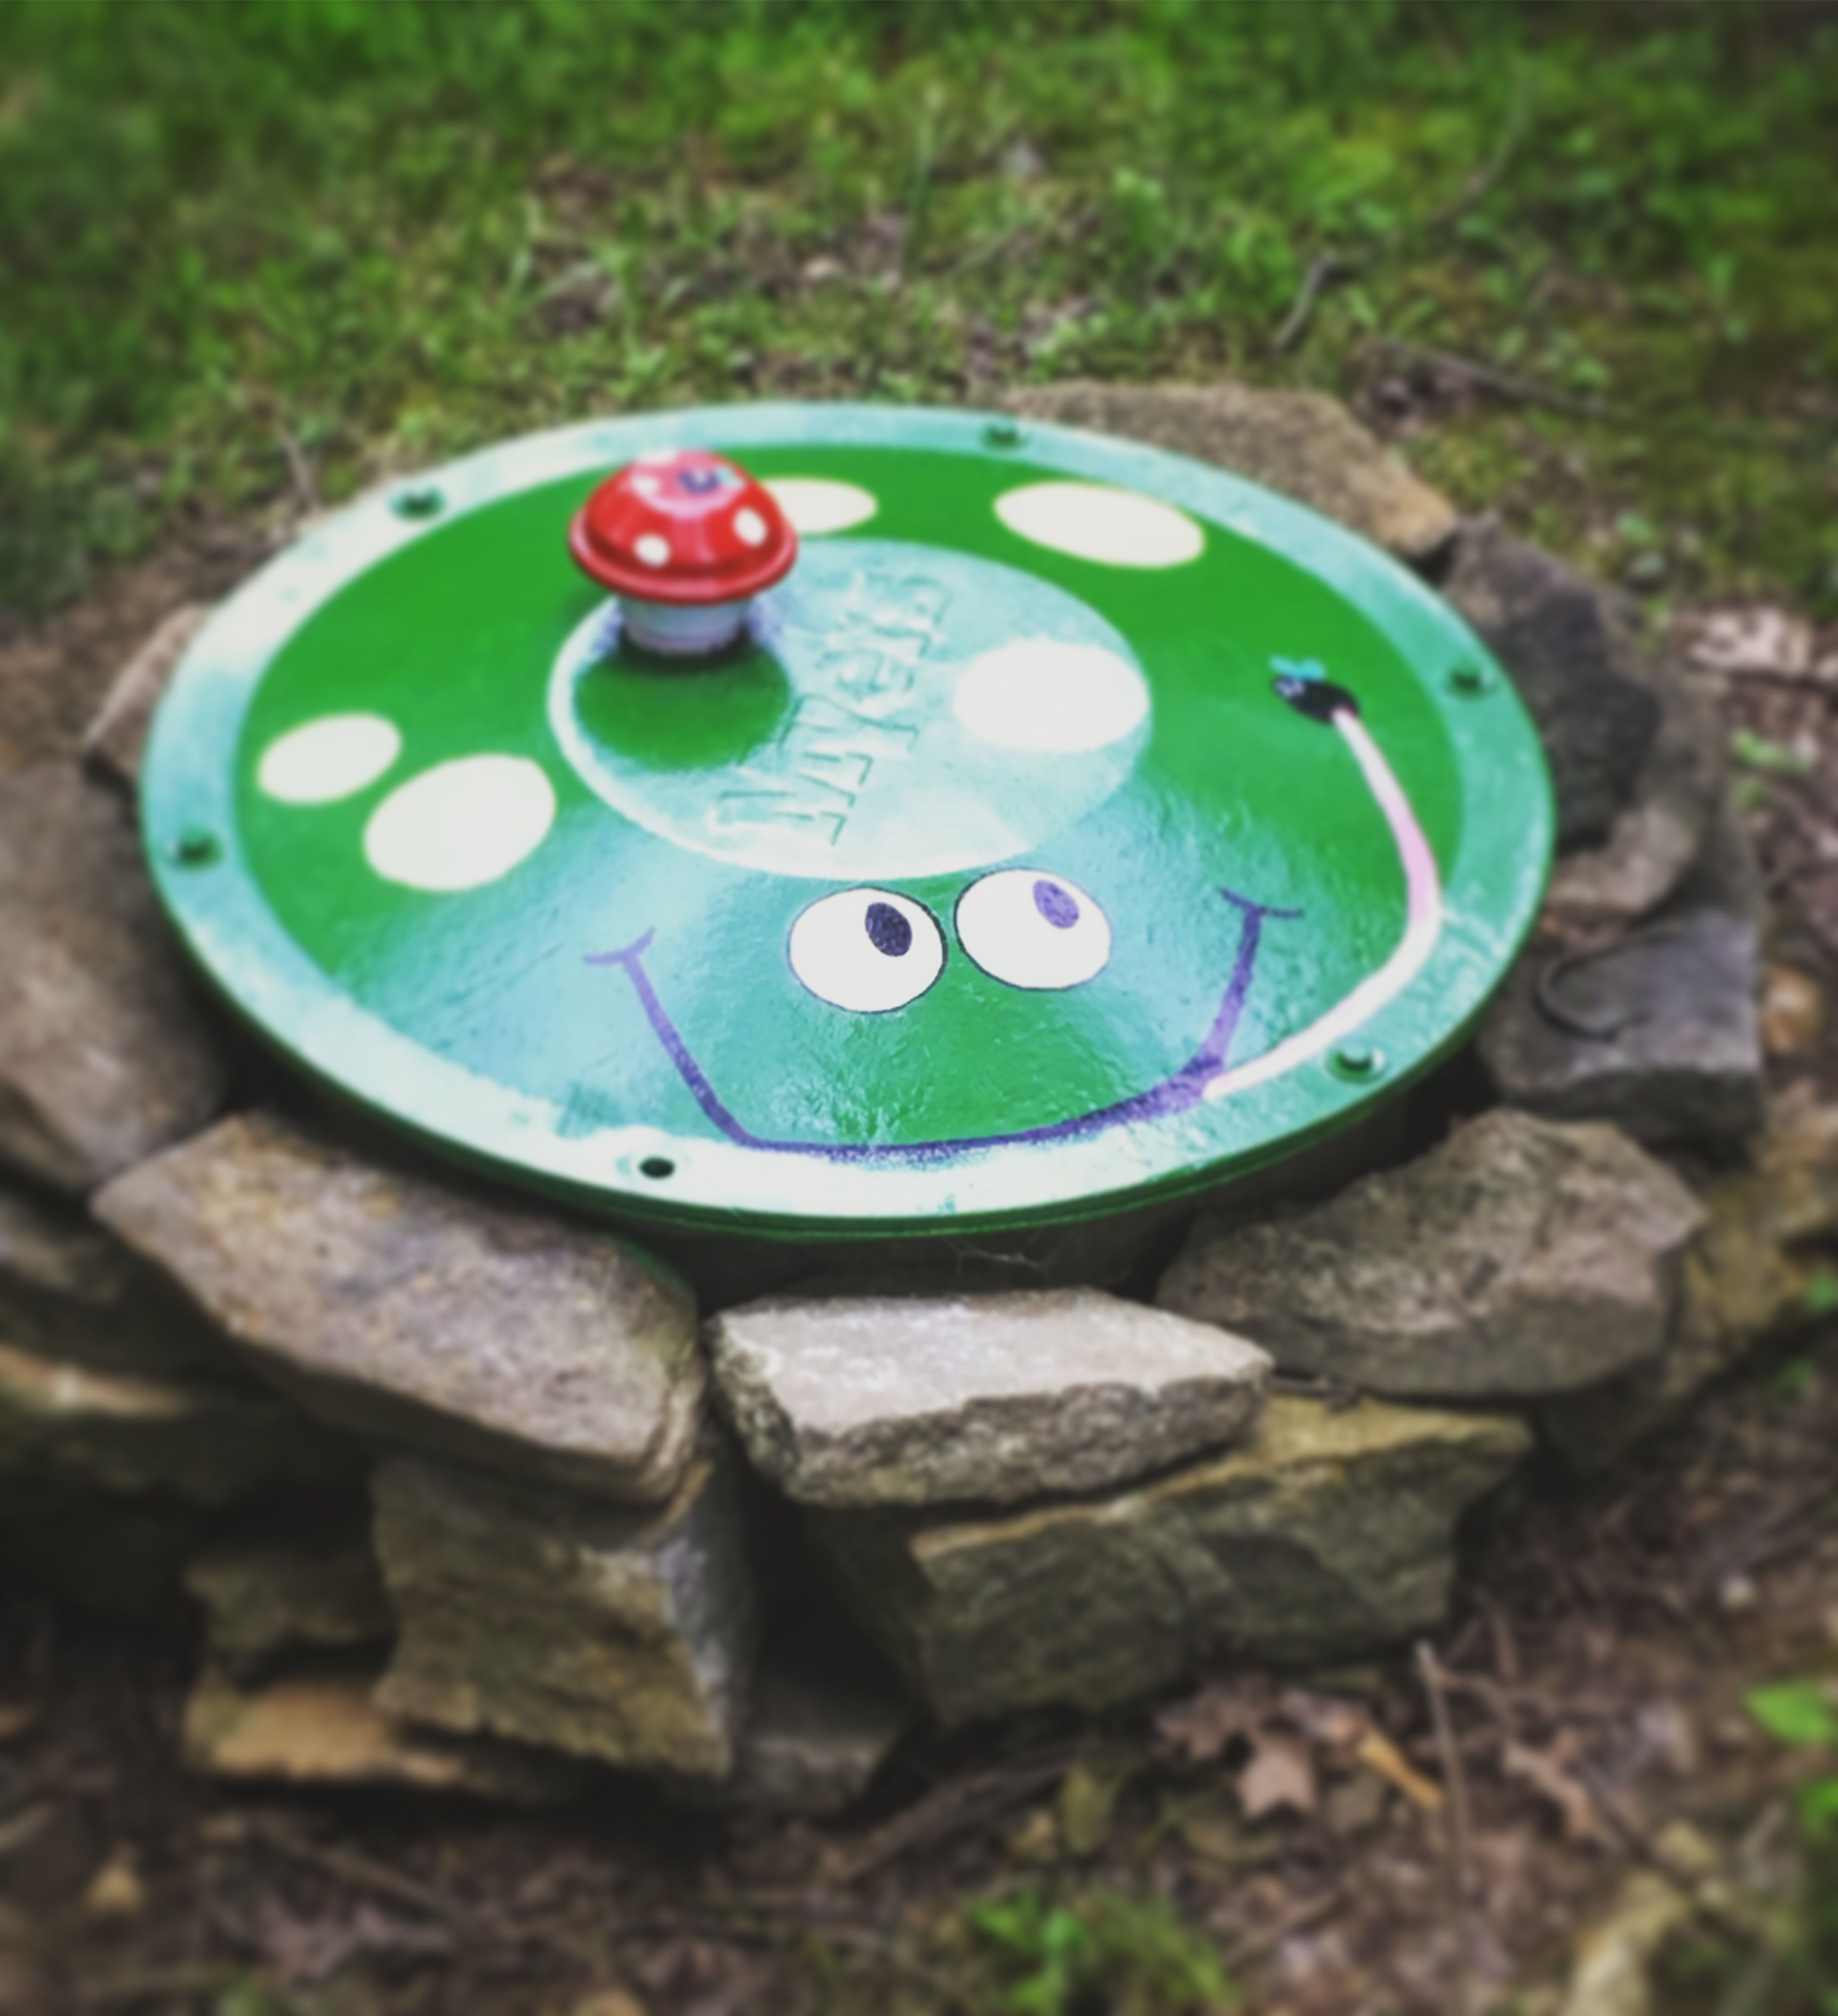 Septic tank cover got a cute makeover! Septic tank